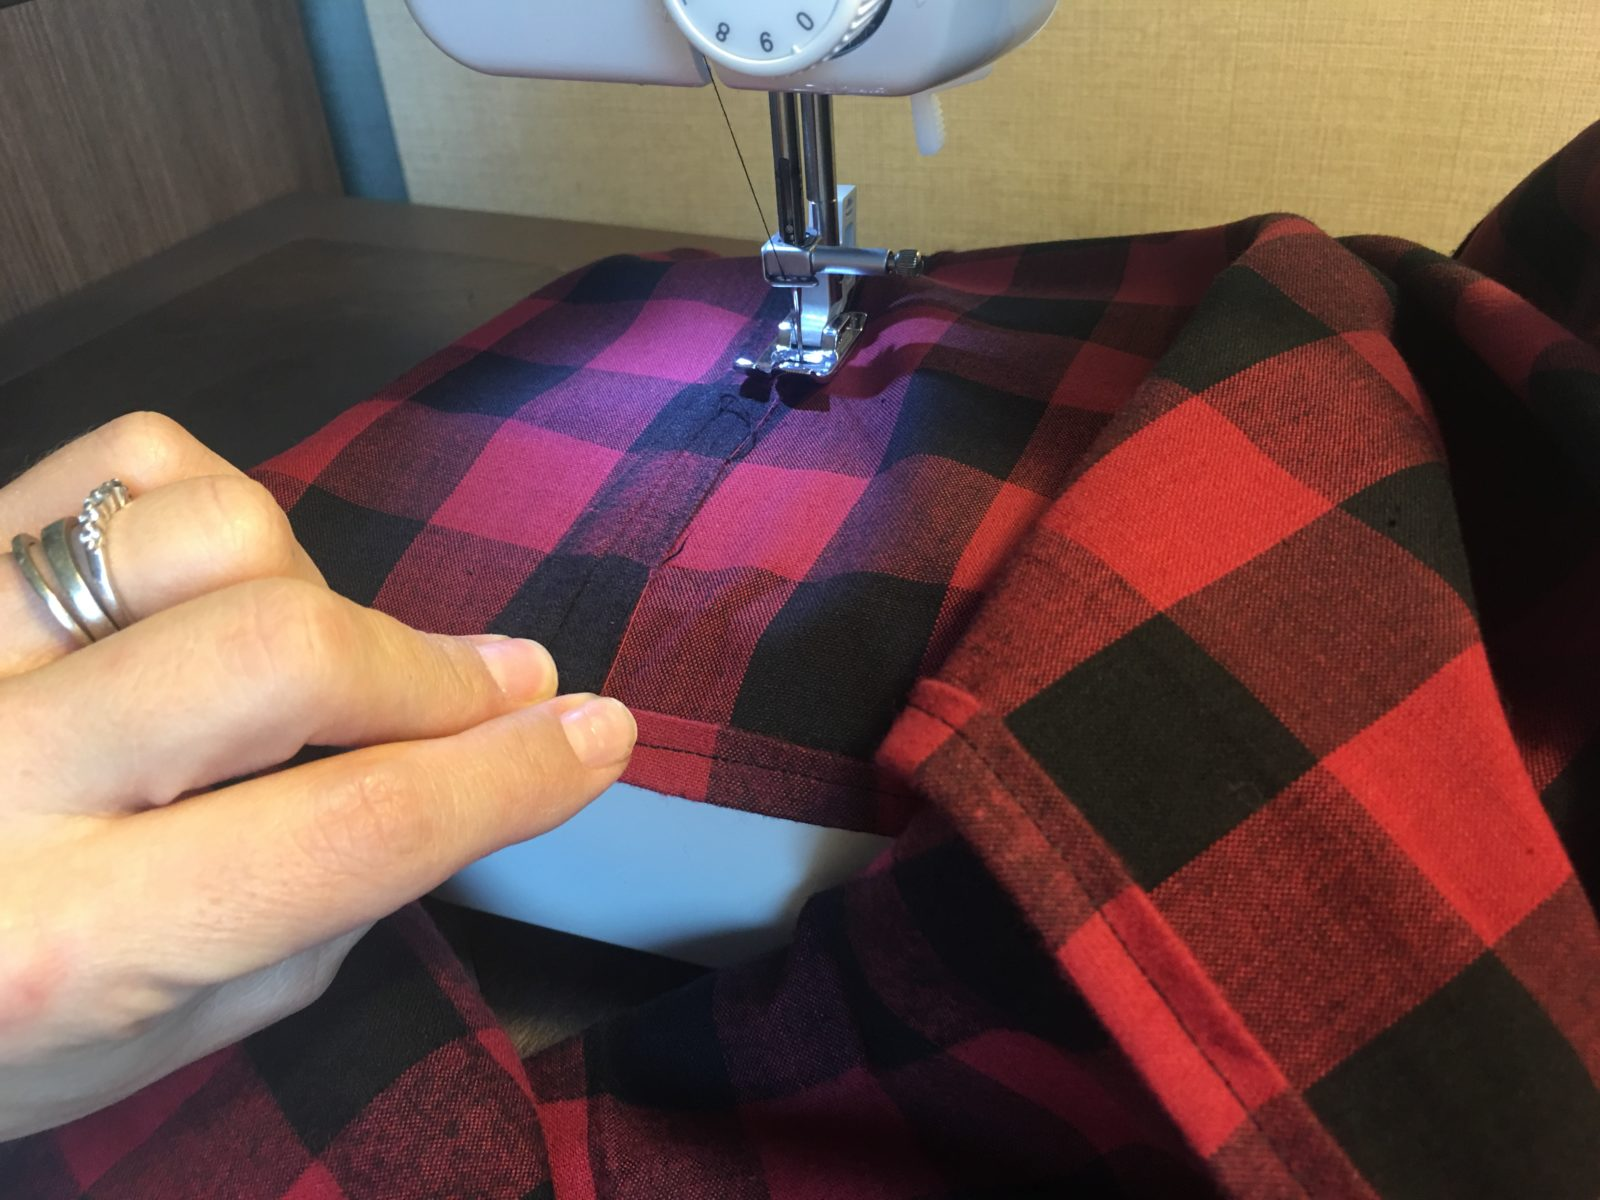 Finish the center seam by rolling the edge and stitching down.